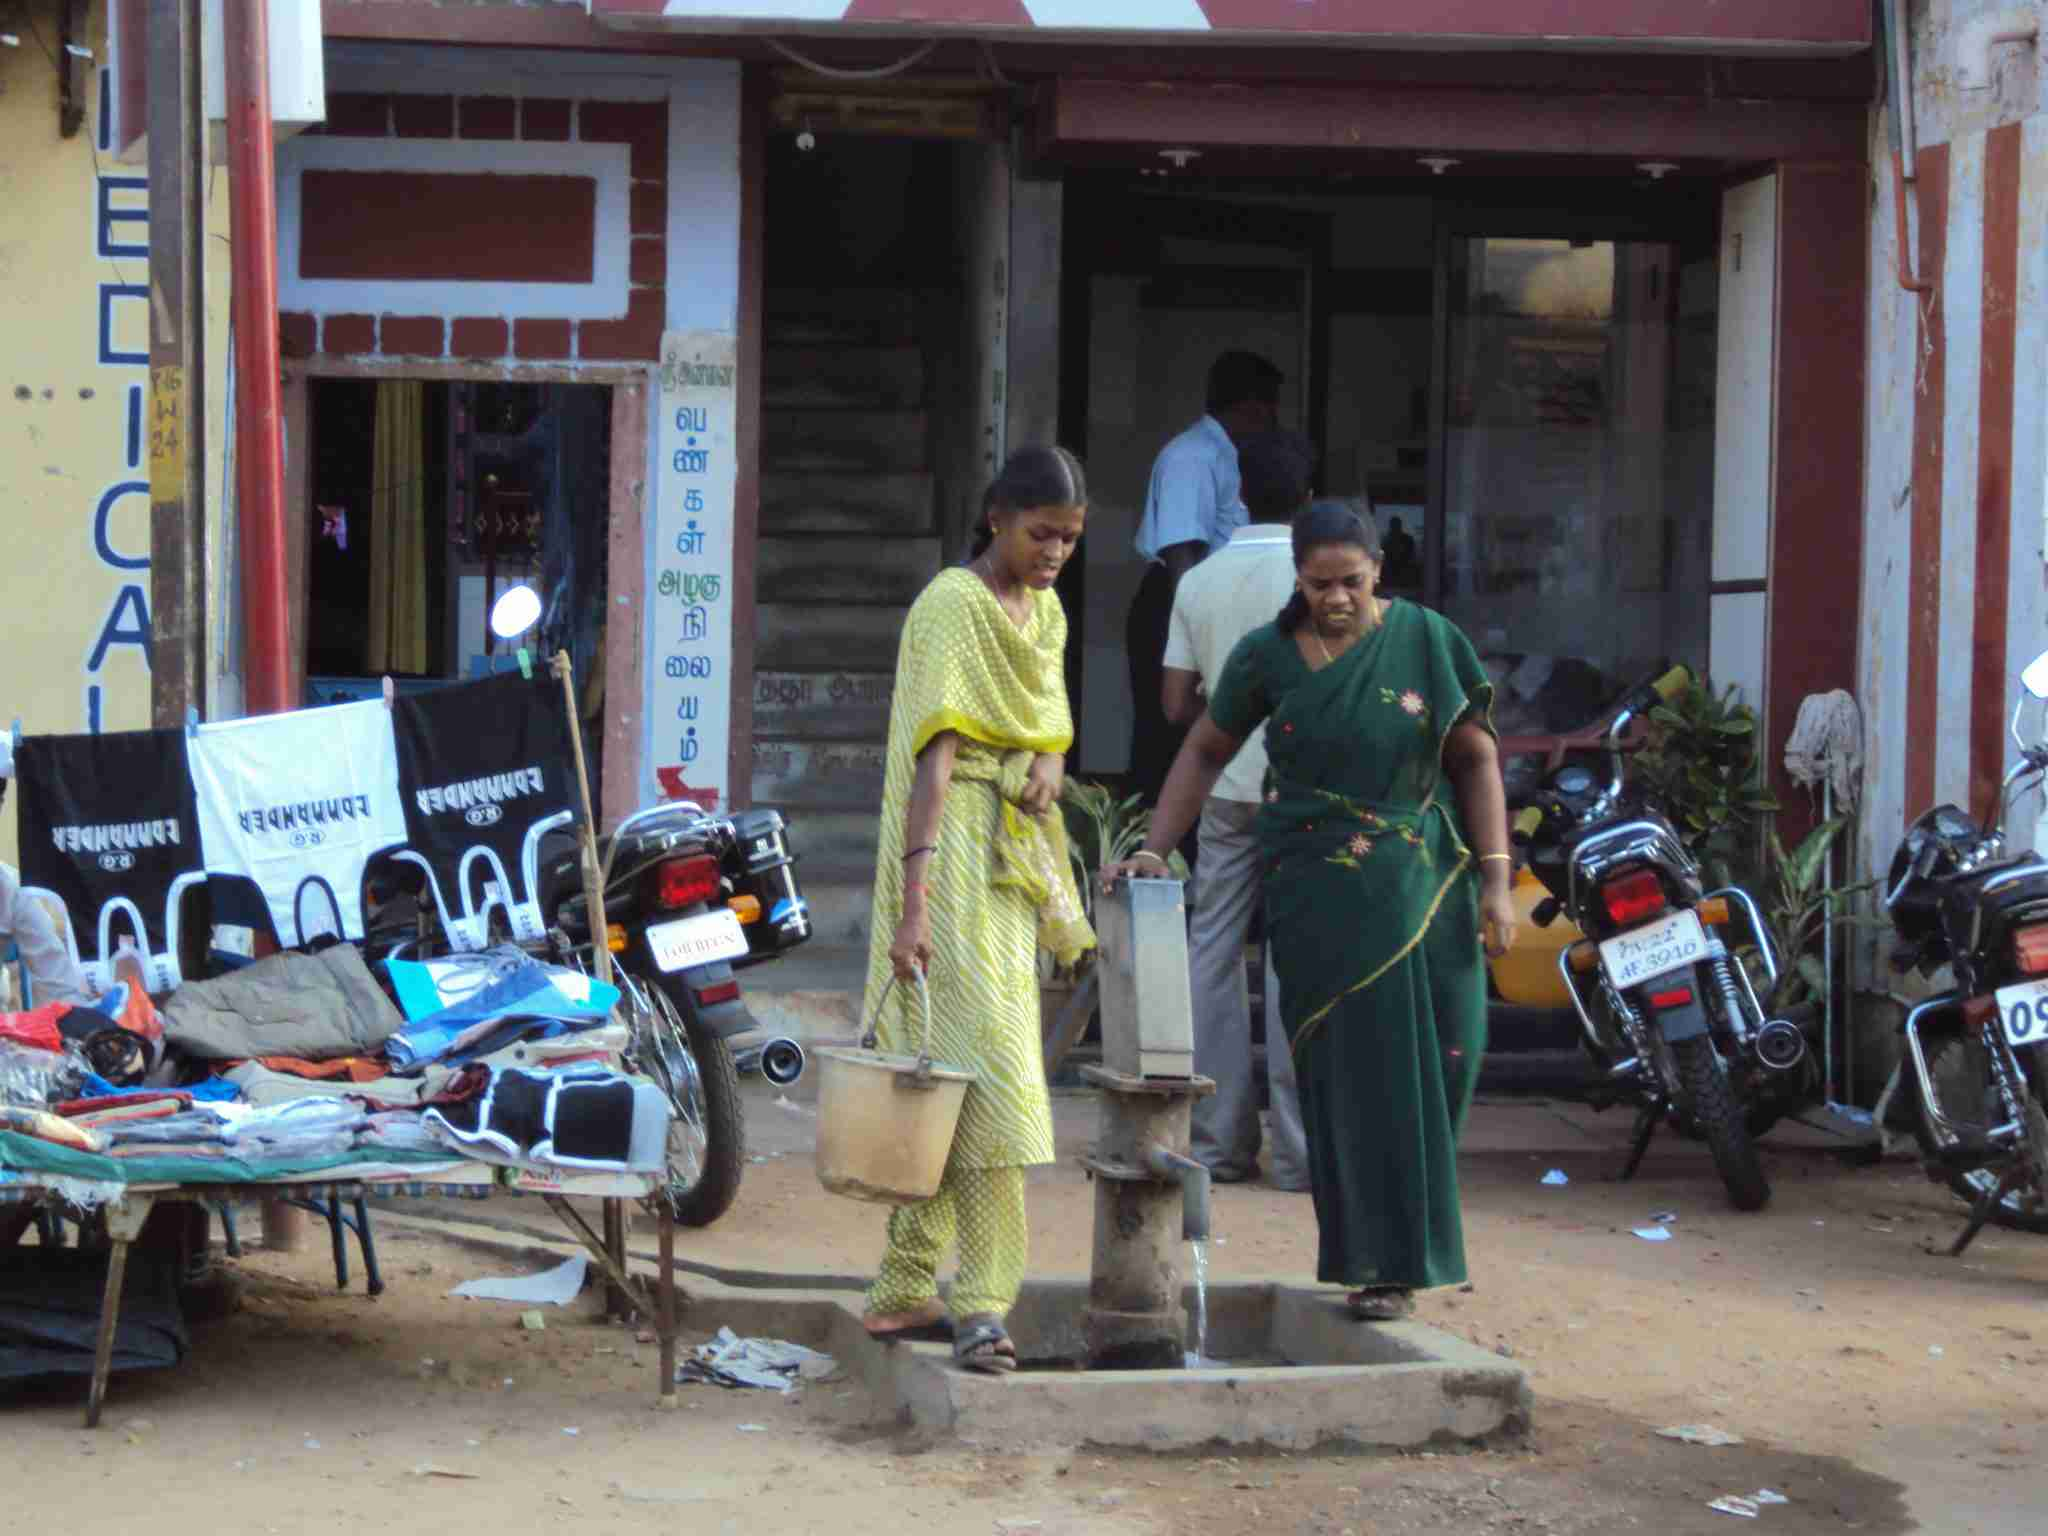 Fetching water at the well